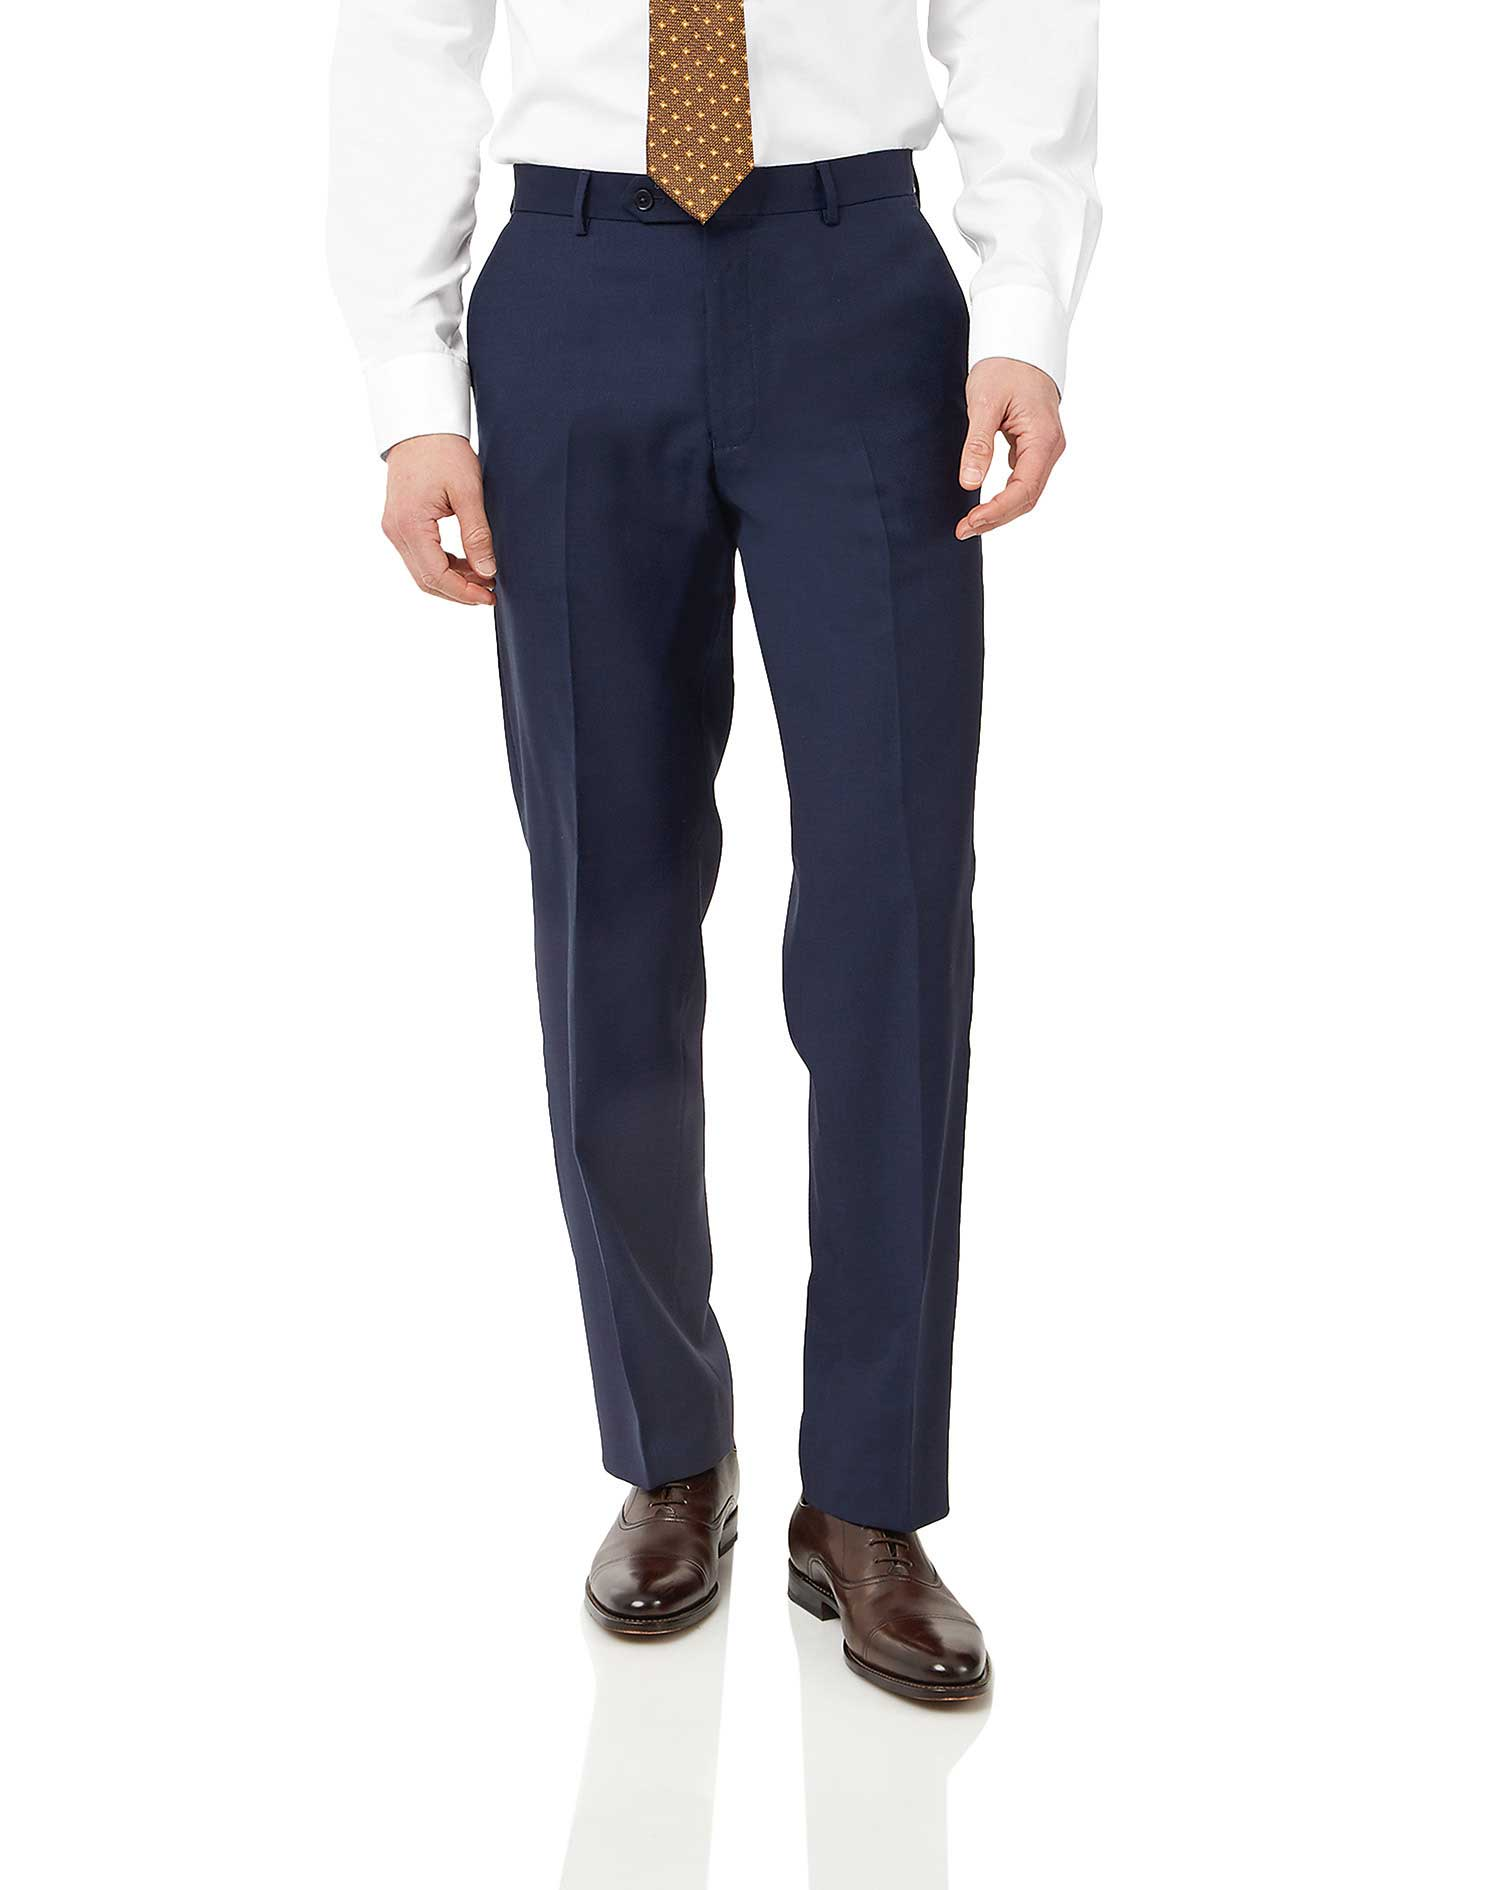 Navy Classic Fit Birdseye Travel Suit Trousers Size W32 L38 by Charles Tyrwhitt